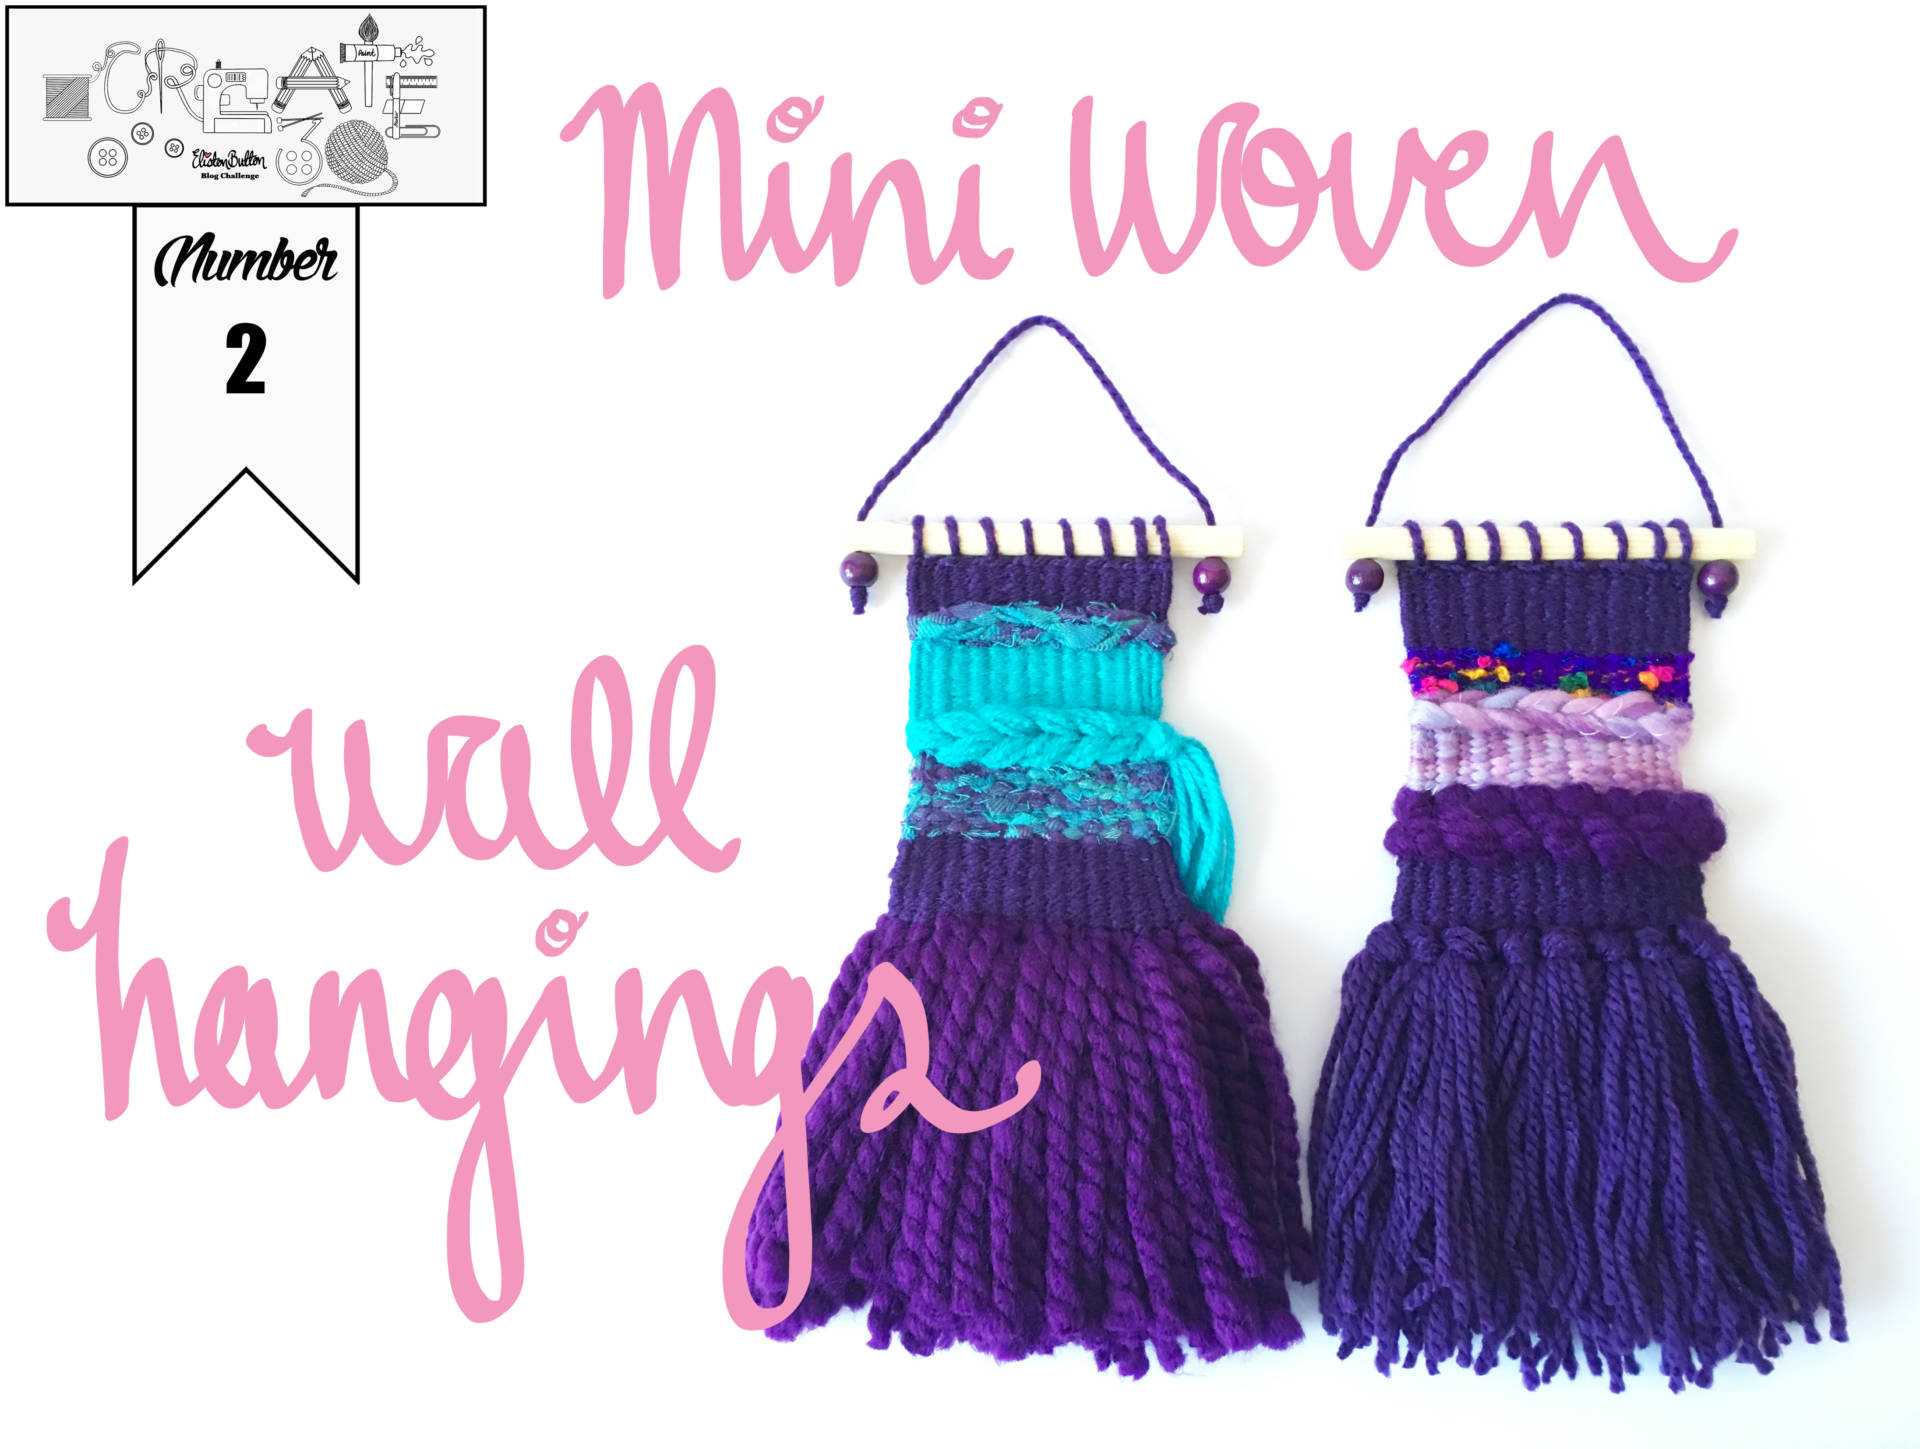 Create 30 - No.2 - Purple Mini Woven Wall Hangings - Create 30 - No.2 - Mini Woven Wall Hangings at www.elistonbutton.com - Eliston Button - That Crafty Kid – Art, Design, Craft & Adventure.